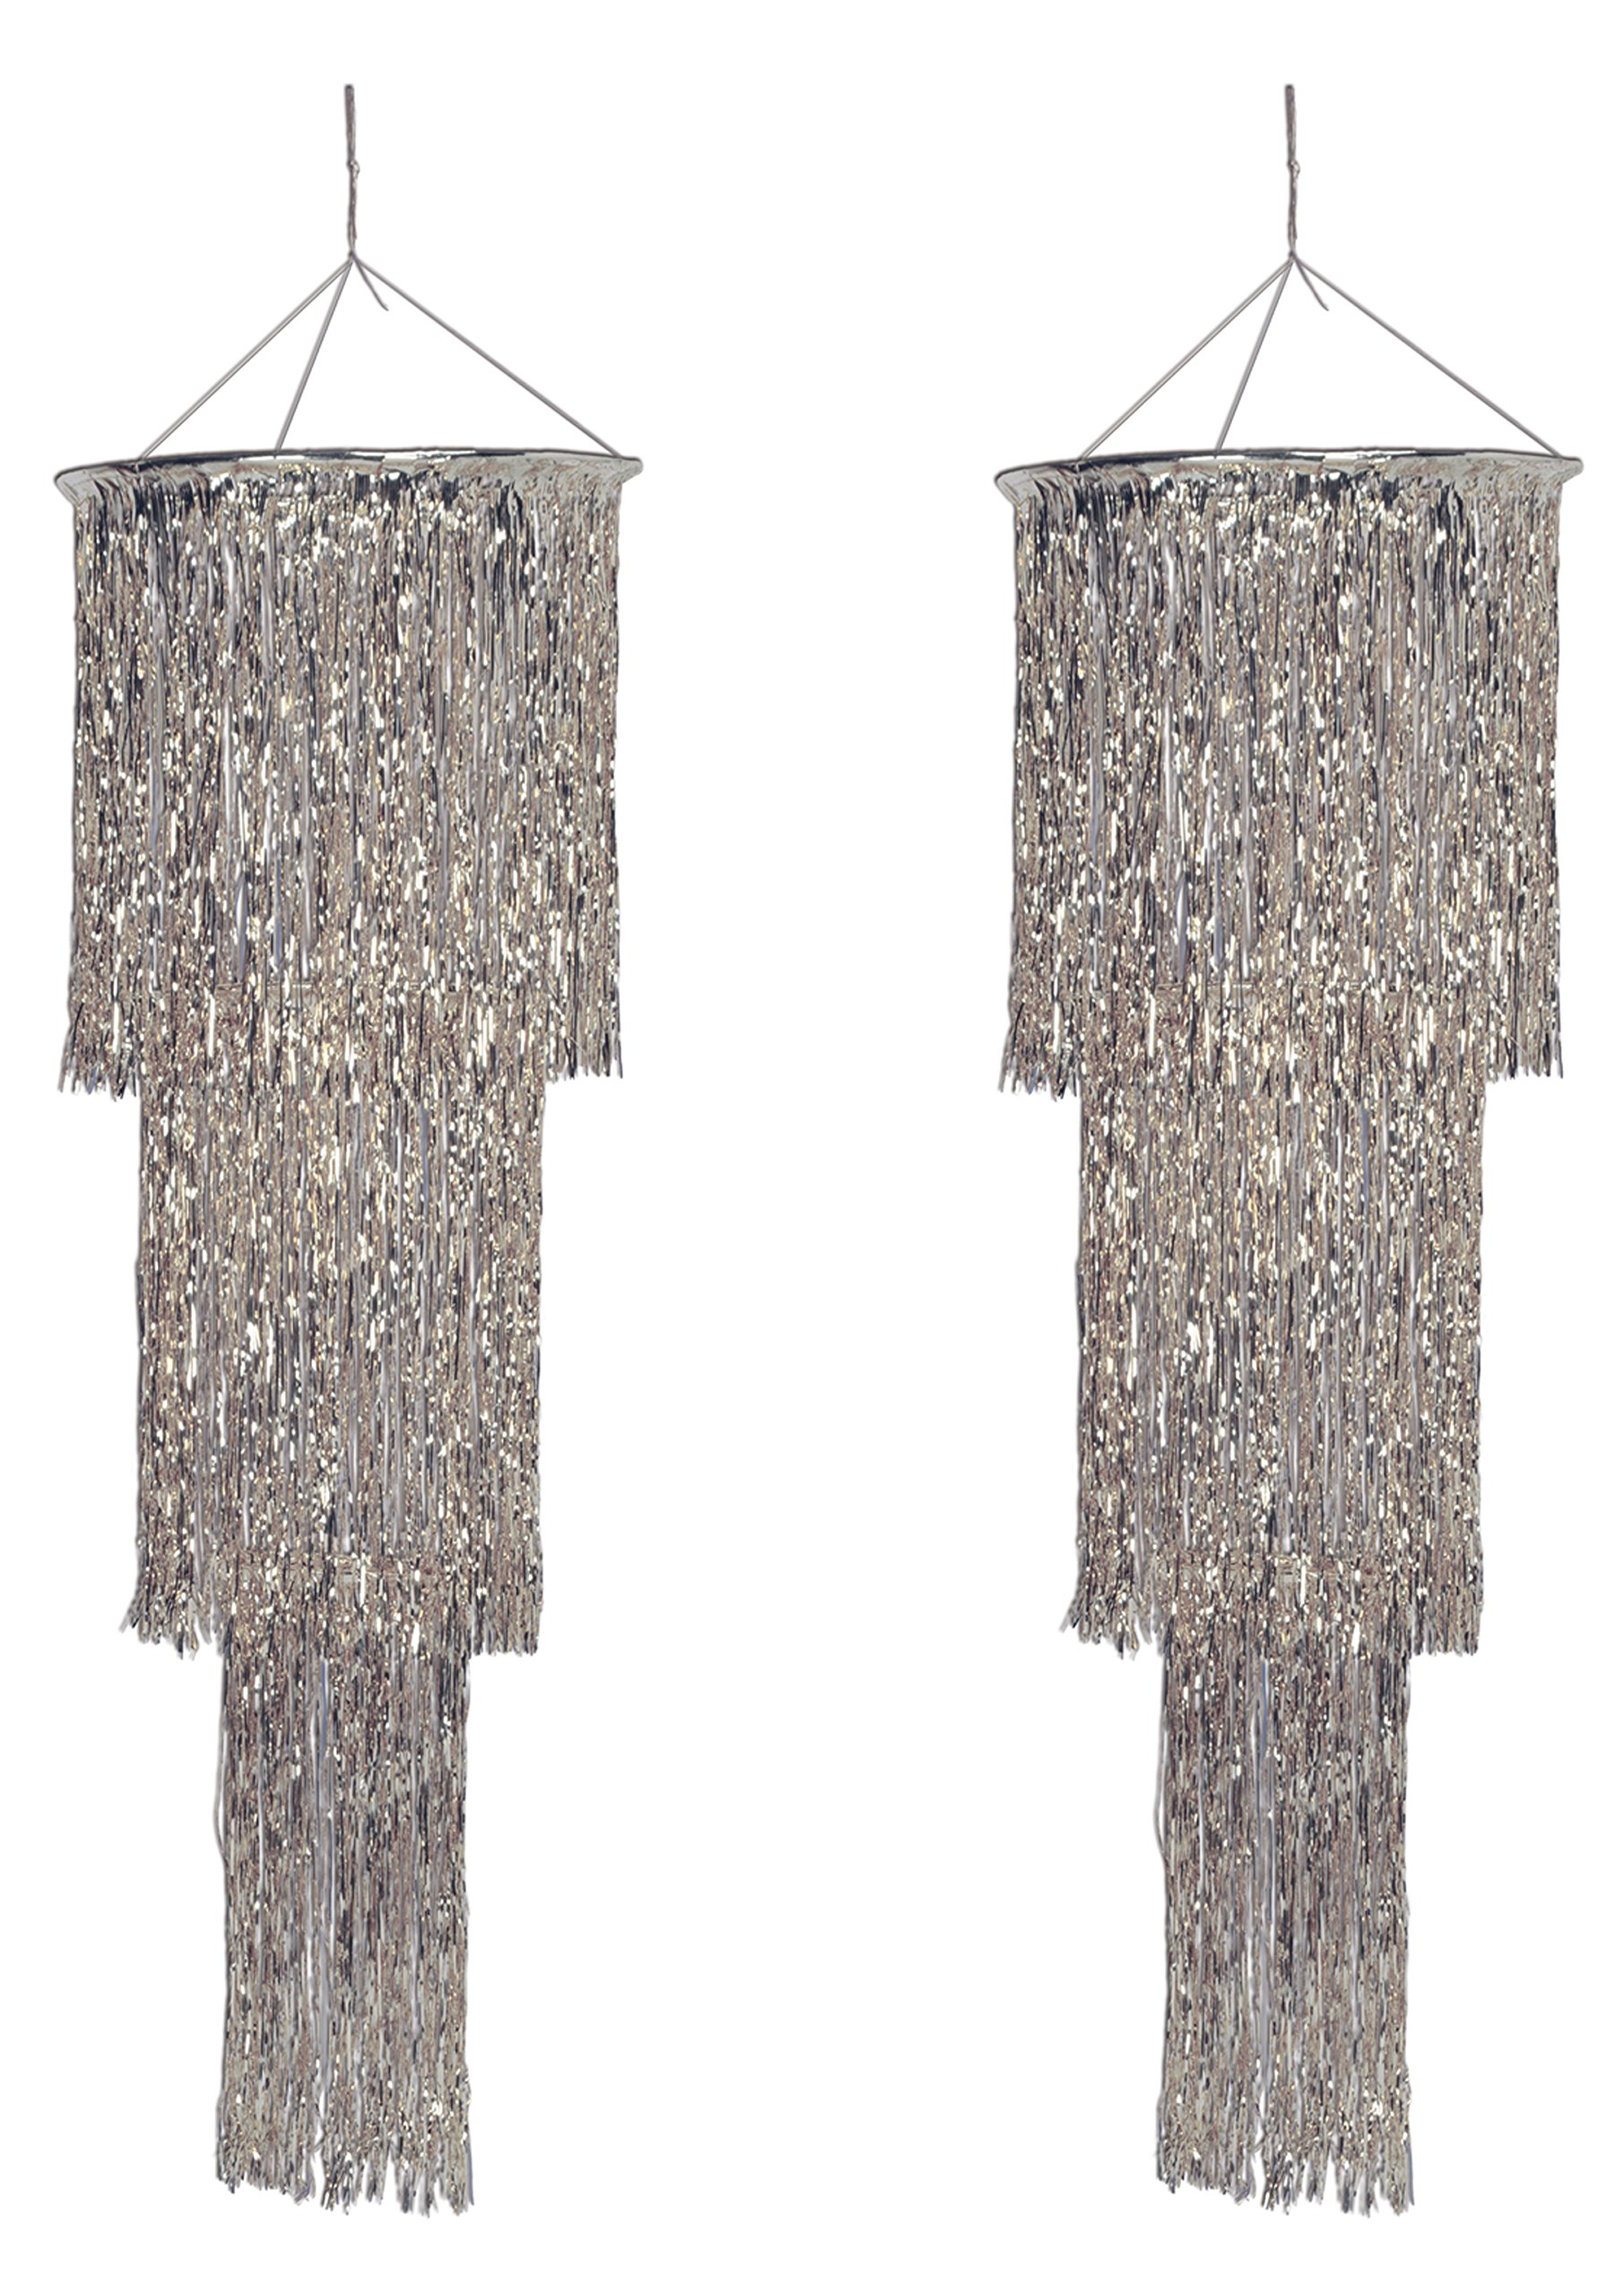 Beistle S57510-SAZ2 Shimmering Chandelier Awards Night Decorations, New Year's Eve Party Supplies, 4', Silver by Beistle